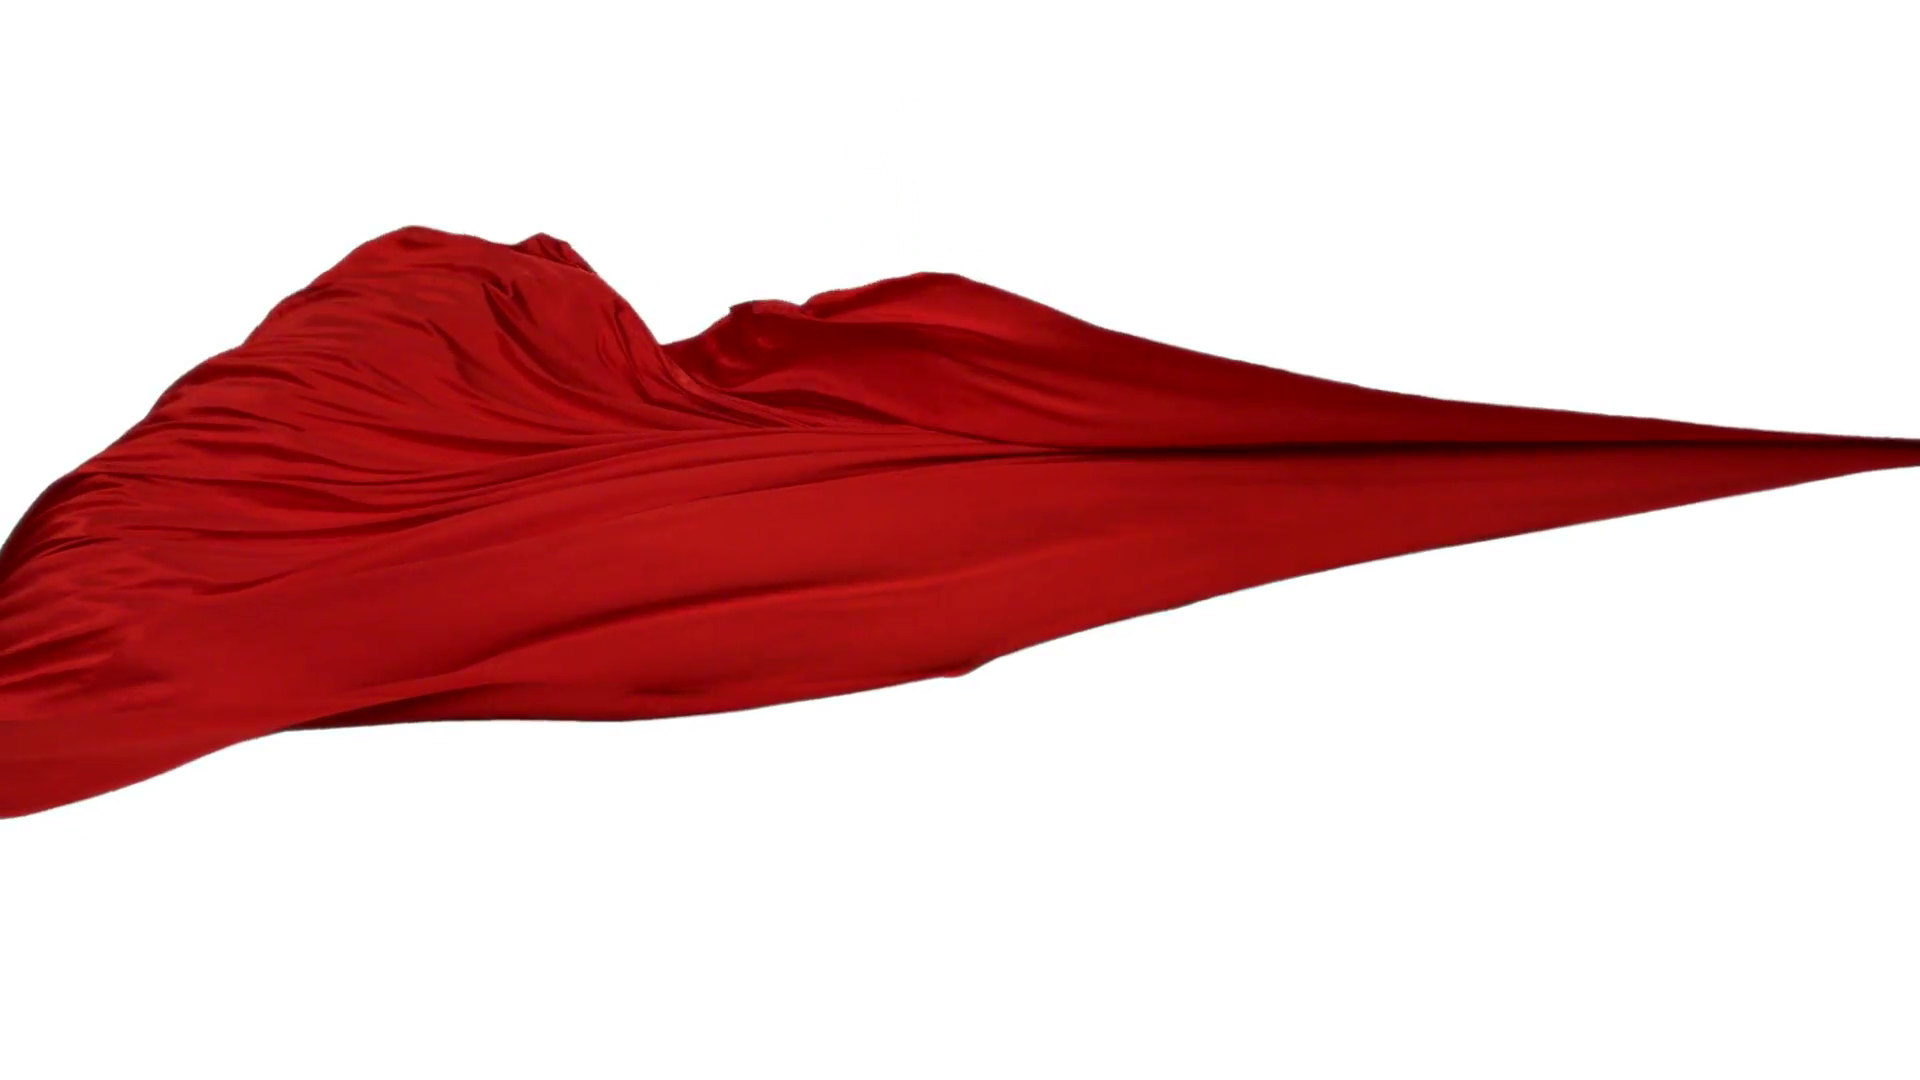 Red fabric flowing on white background, Slow Motion Stock Video Footage.